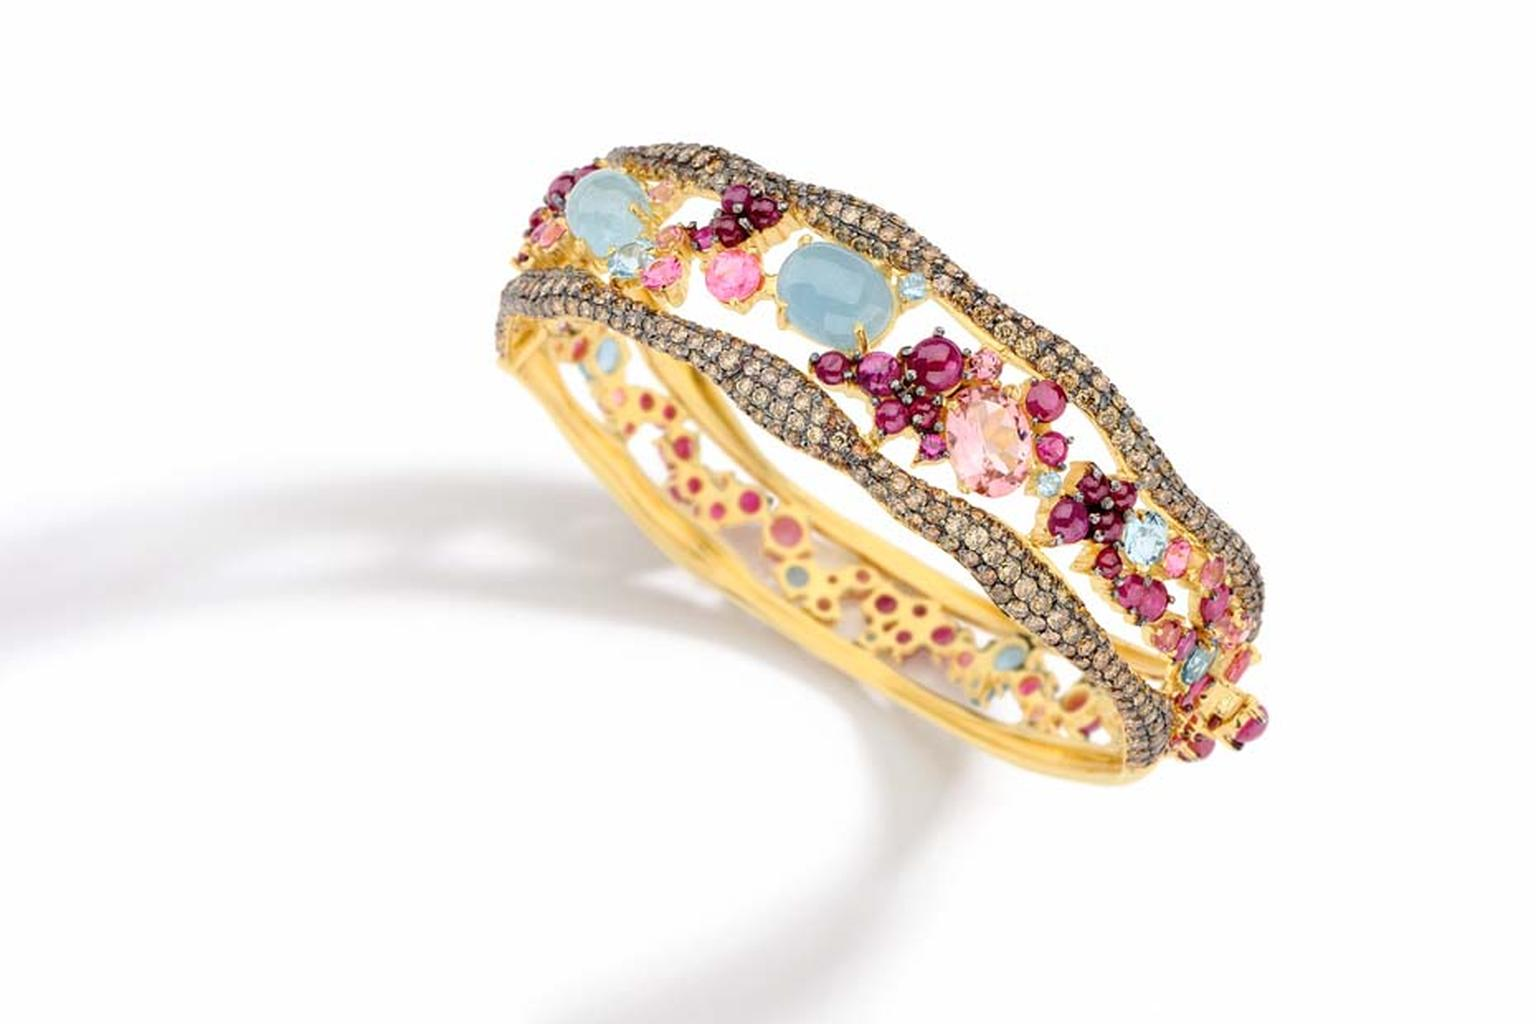 Brumani Baobab collection yellow gold bracelet with brown diamonds, aquamarines, rubies and pink tourmalines.